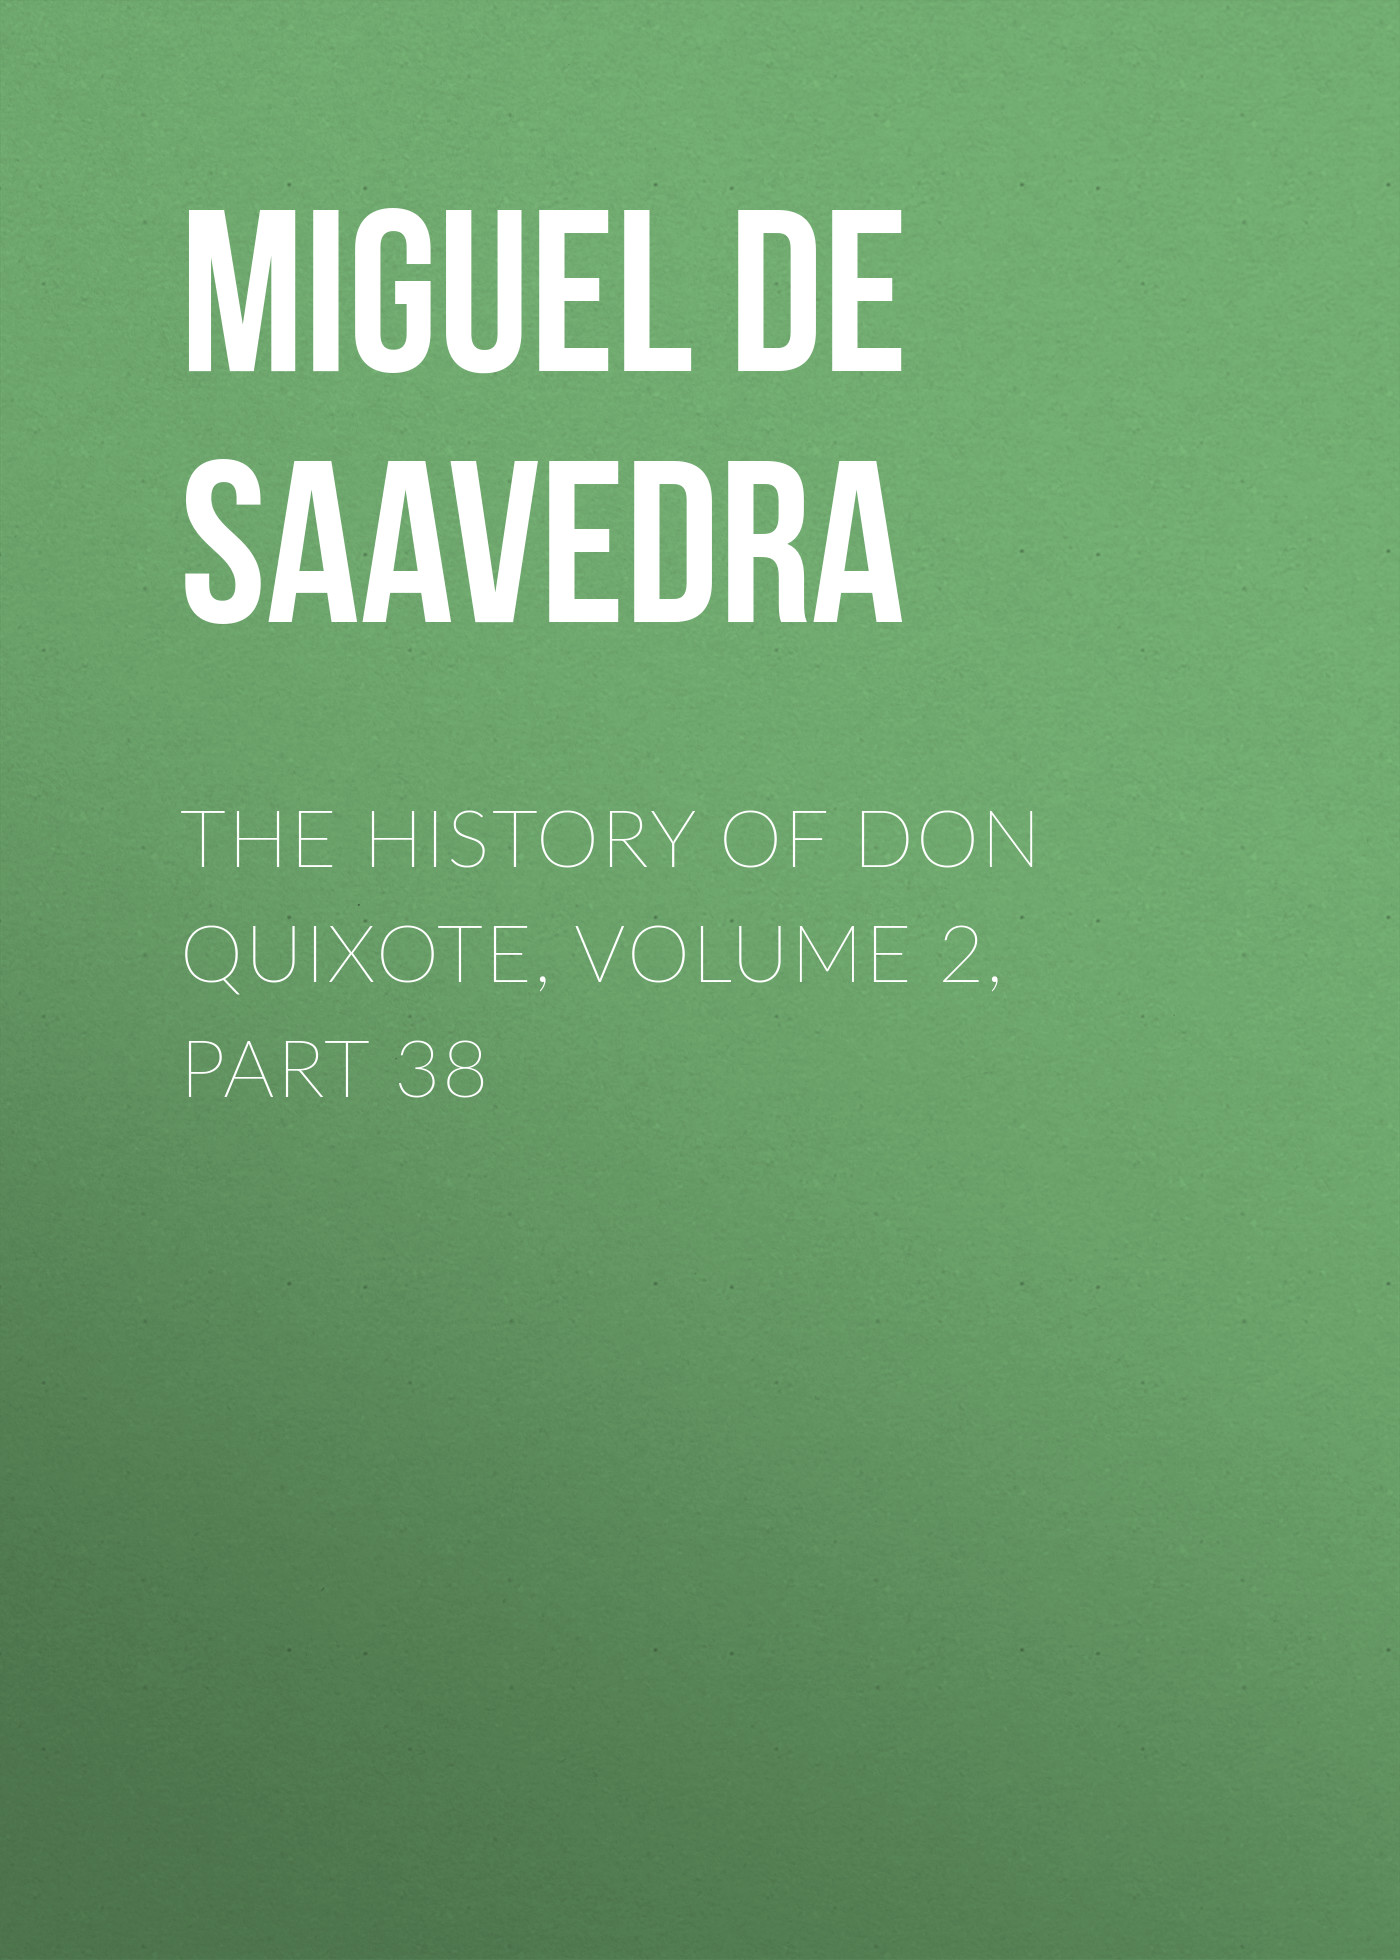 Мигель де Сервантес Сааведра The History of Don Quixote, Volume 2, Part 38 rasmus björn anderson the heimskringla a history of the norse kings volume 5 part 2